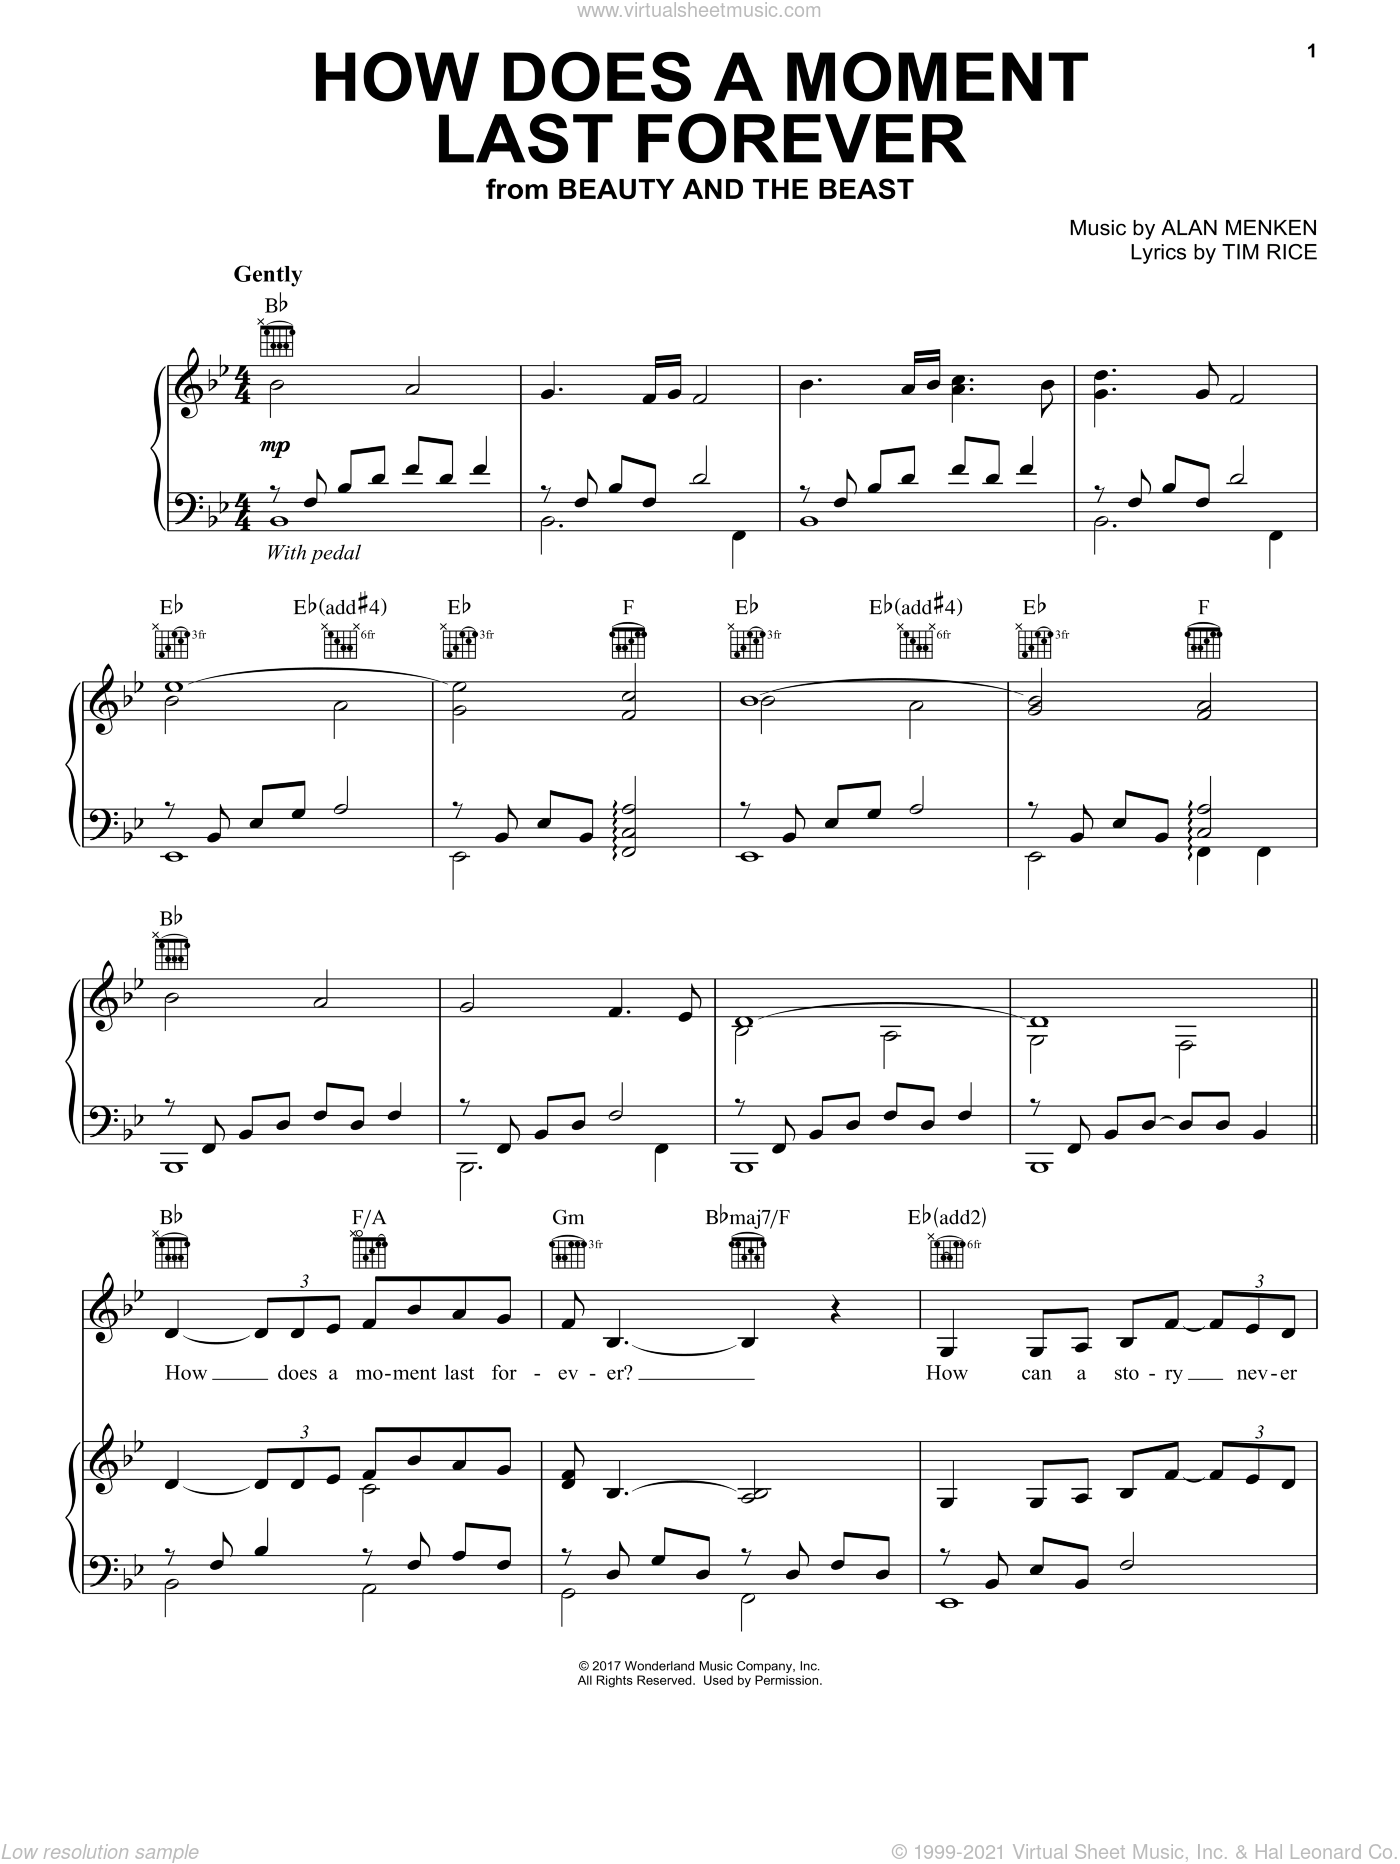 How Does A Moment Last Forever sheet music for voice, piano or guitar by Celine Dion, Alan Menken and Tim Rice, intermediate skill level